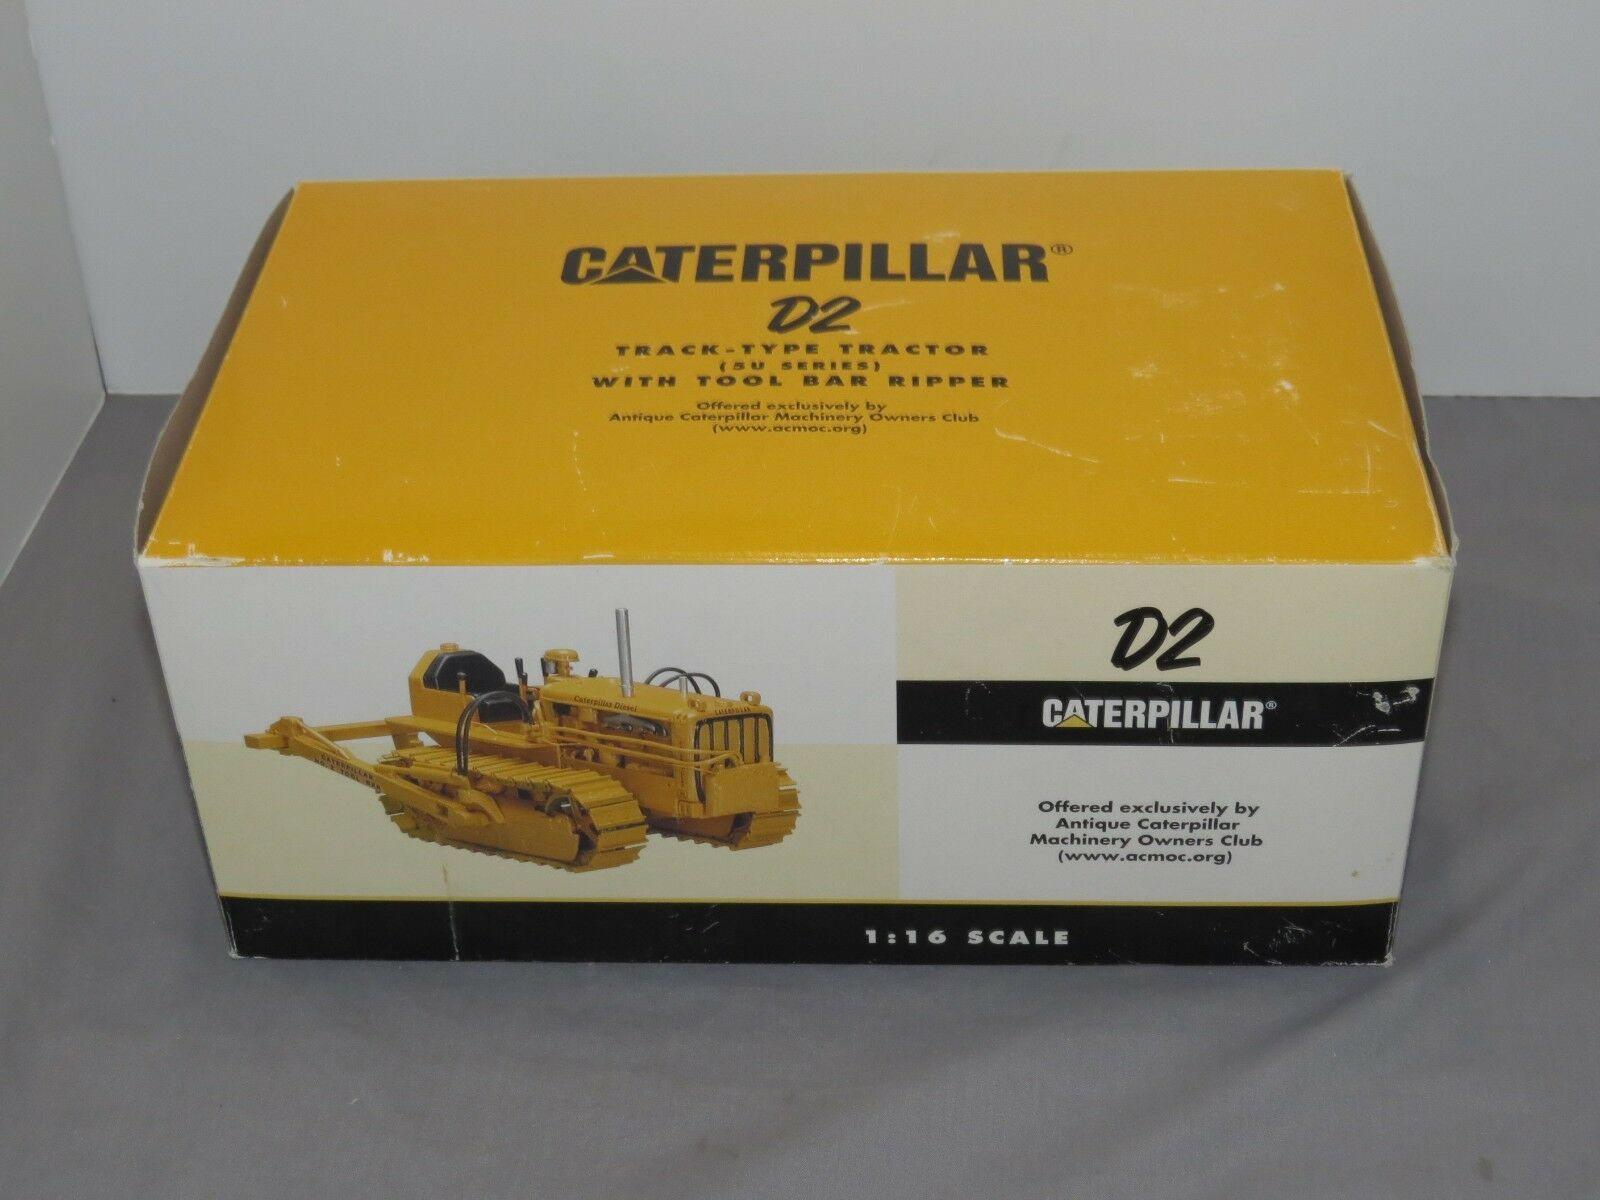 Vintage 1 16 Caterpiller D2 sur chenilles tracteur avec outil bar Ripper by specCast NEW IN BOX